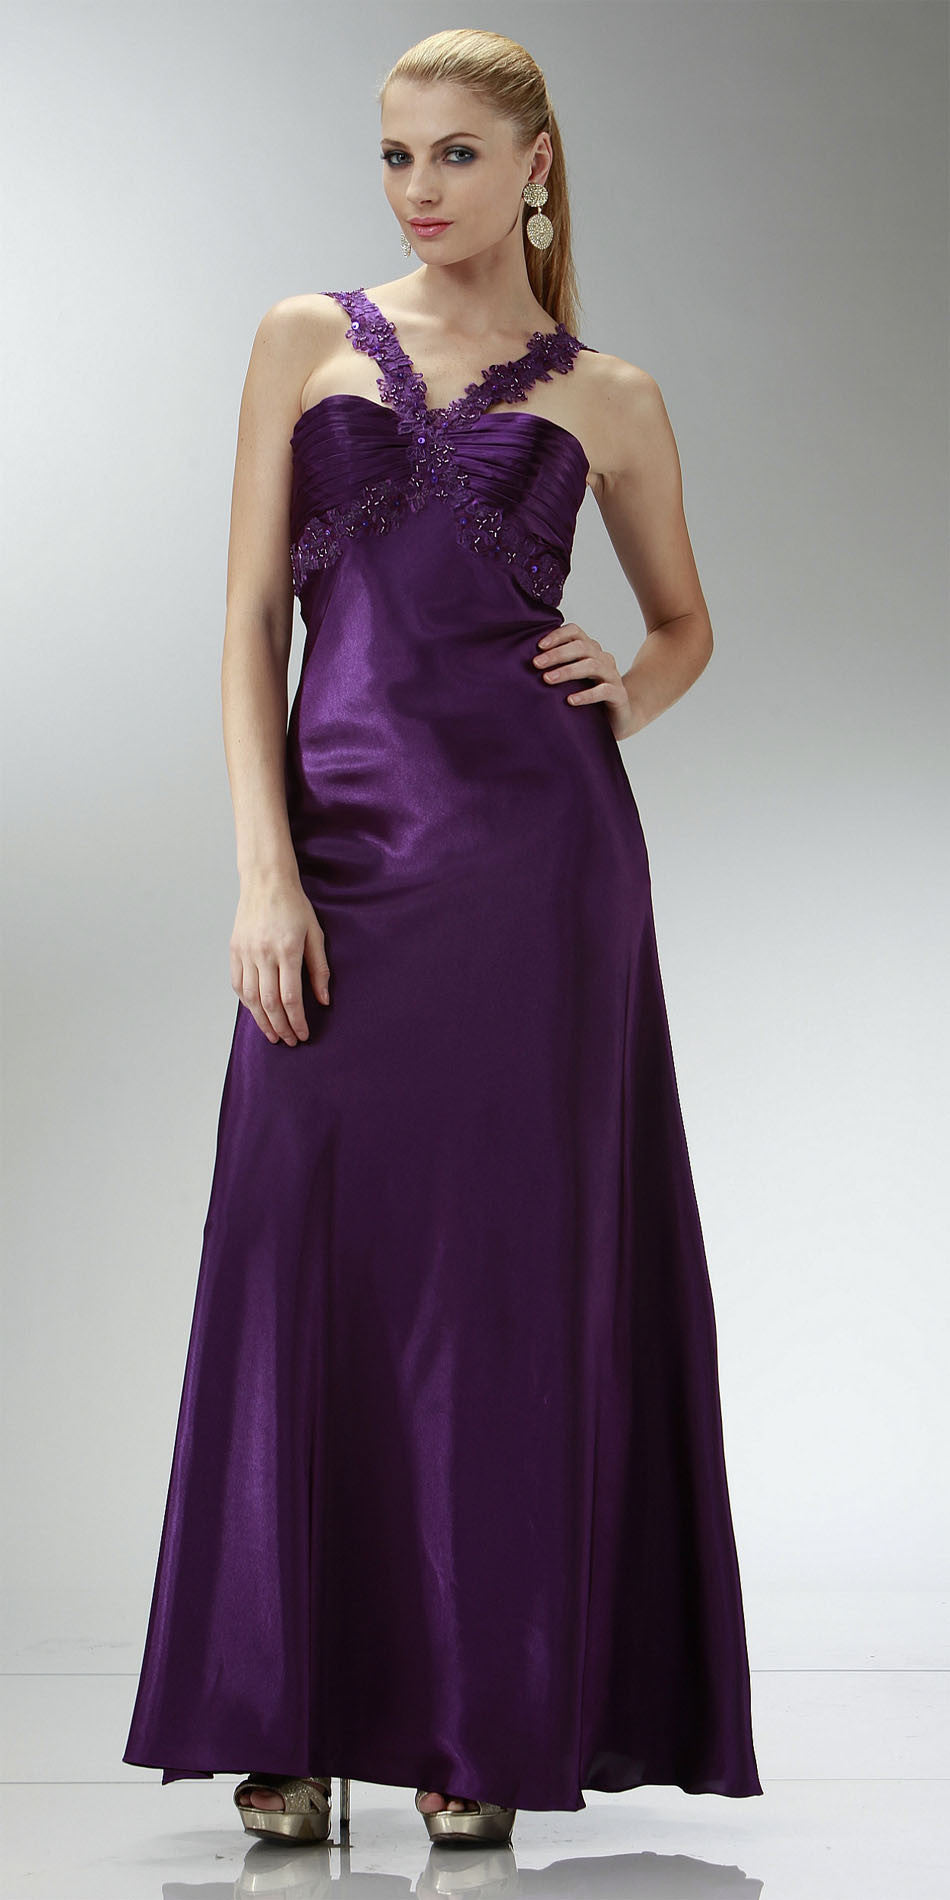 d2ce6029daf ON SPECIAL LIMITED STOCK - Cheap Purple Prom Dress Full Length Satin Gown  Applique Cross Straps